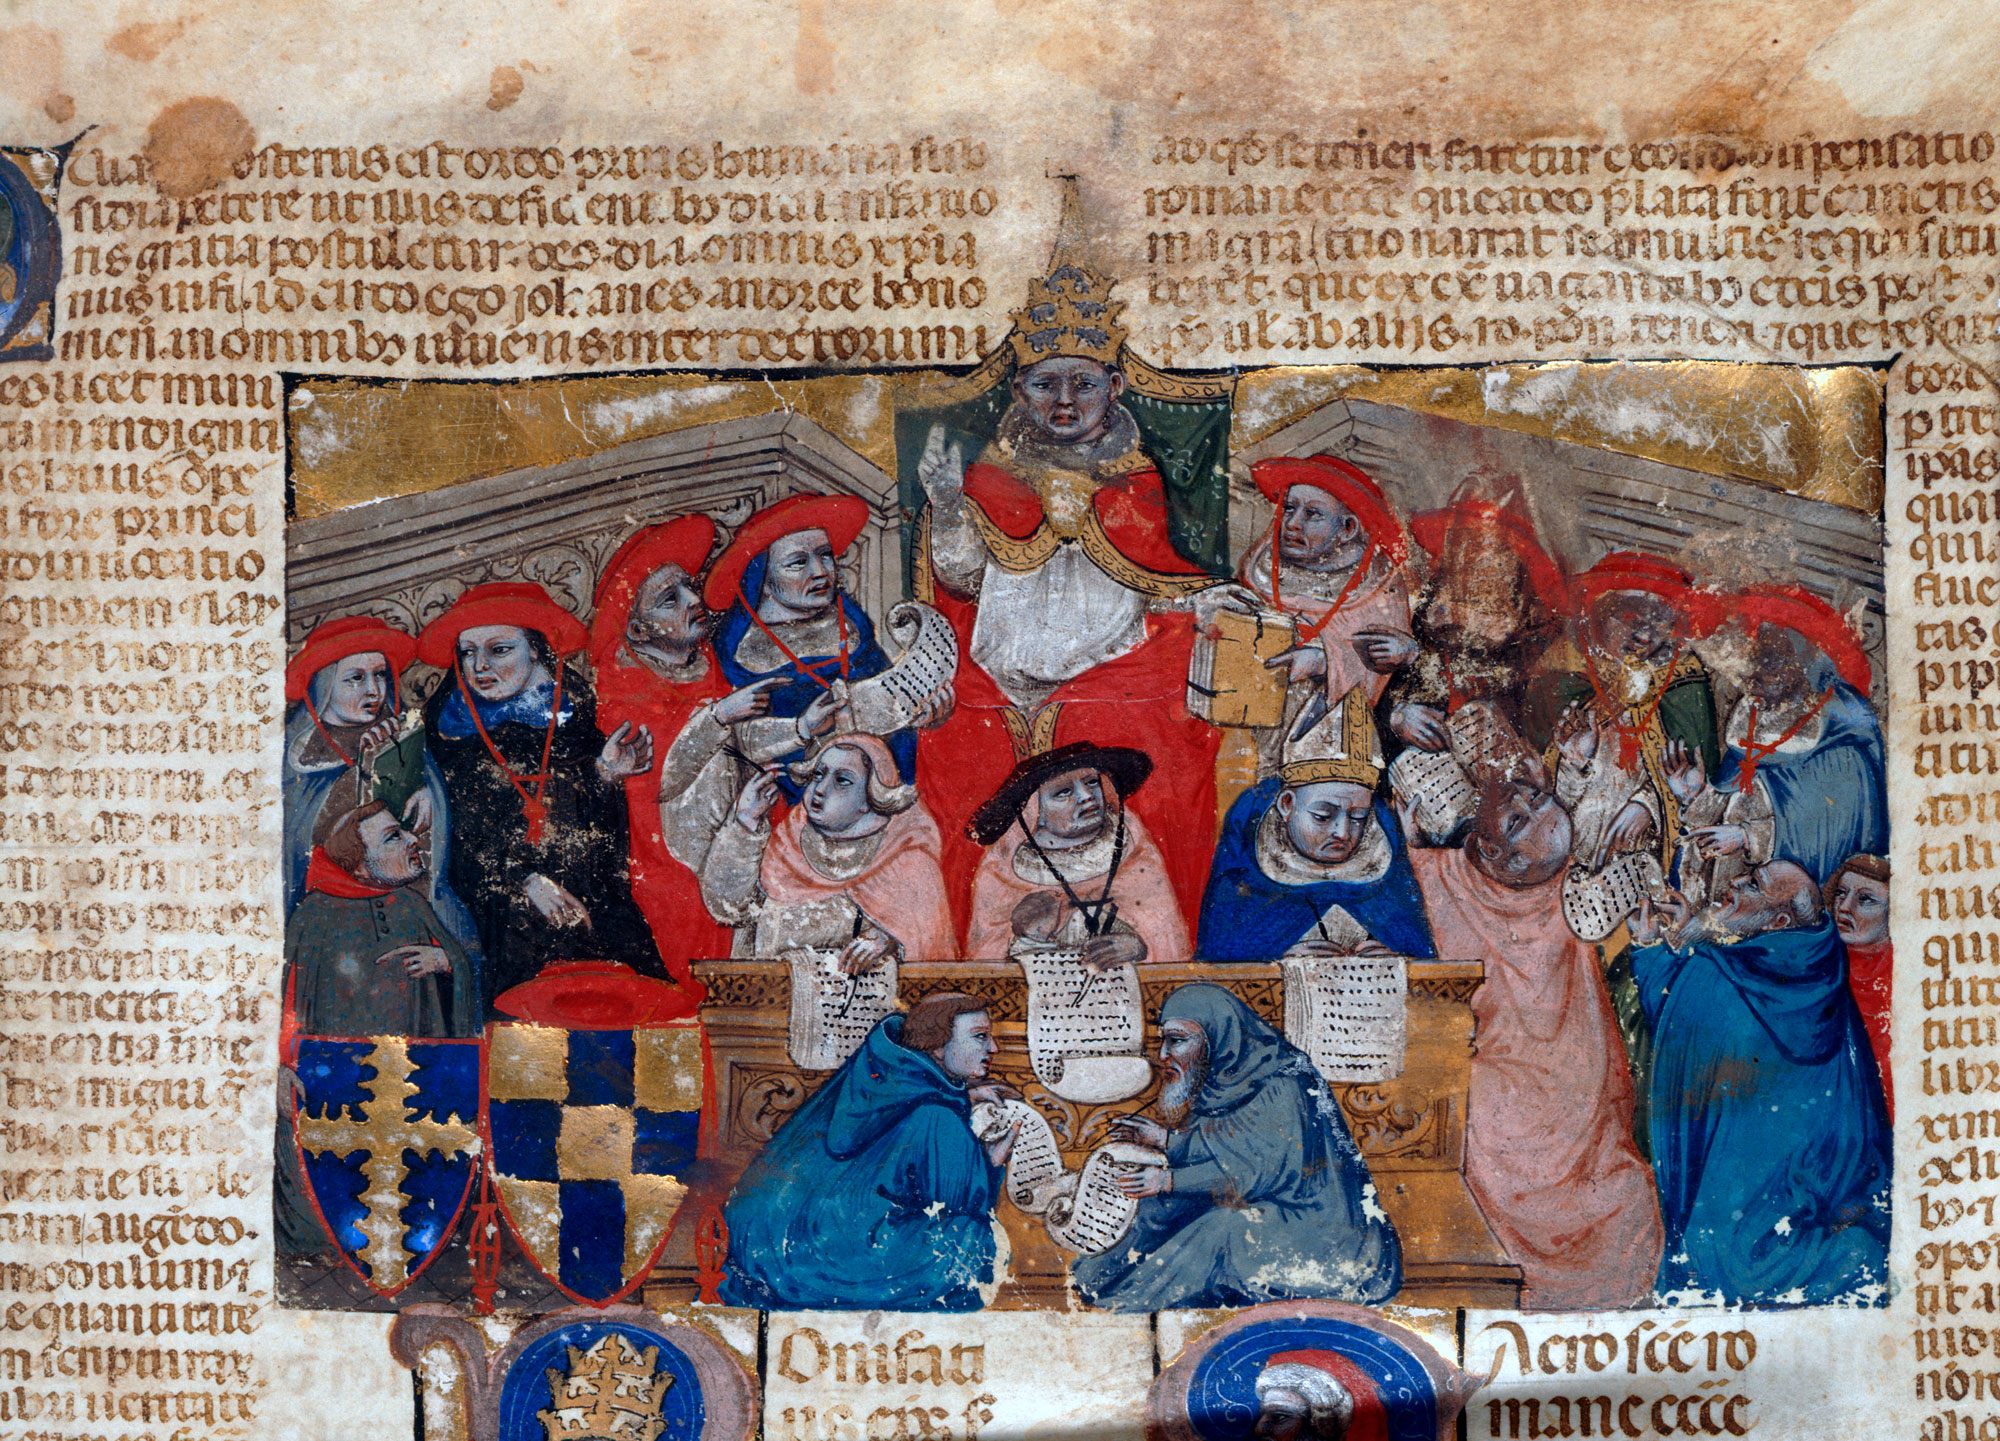 Festivities in the Middle Ages French book